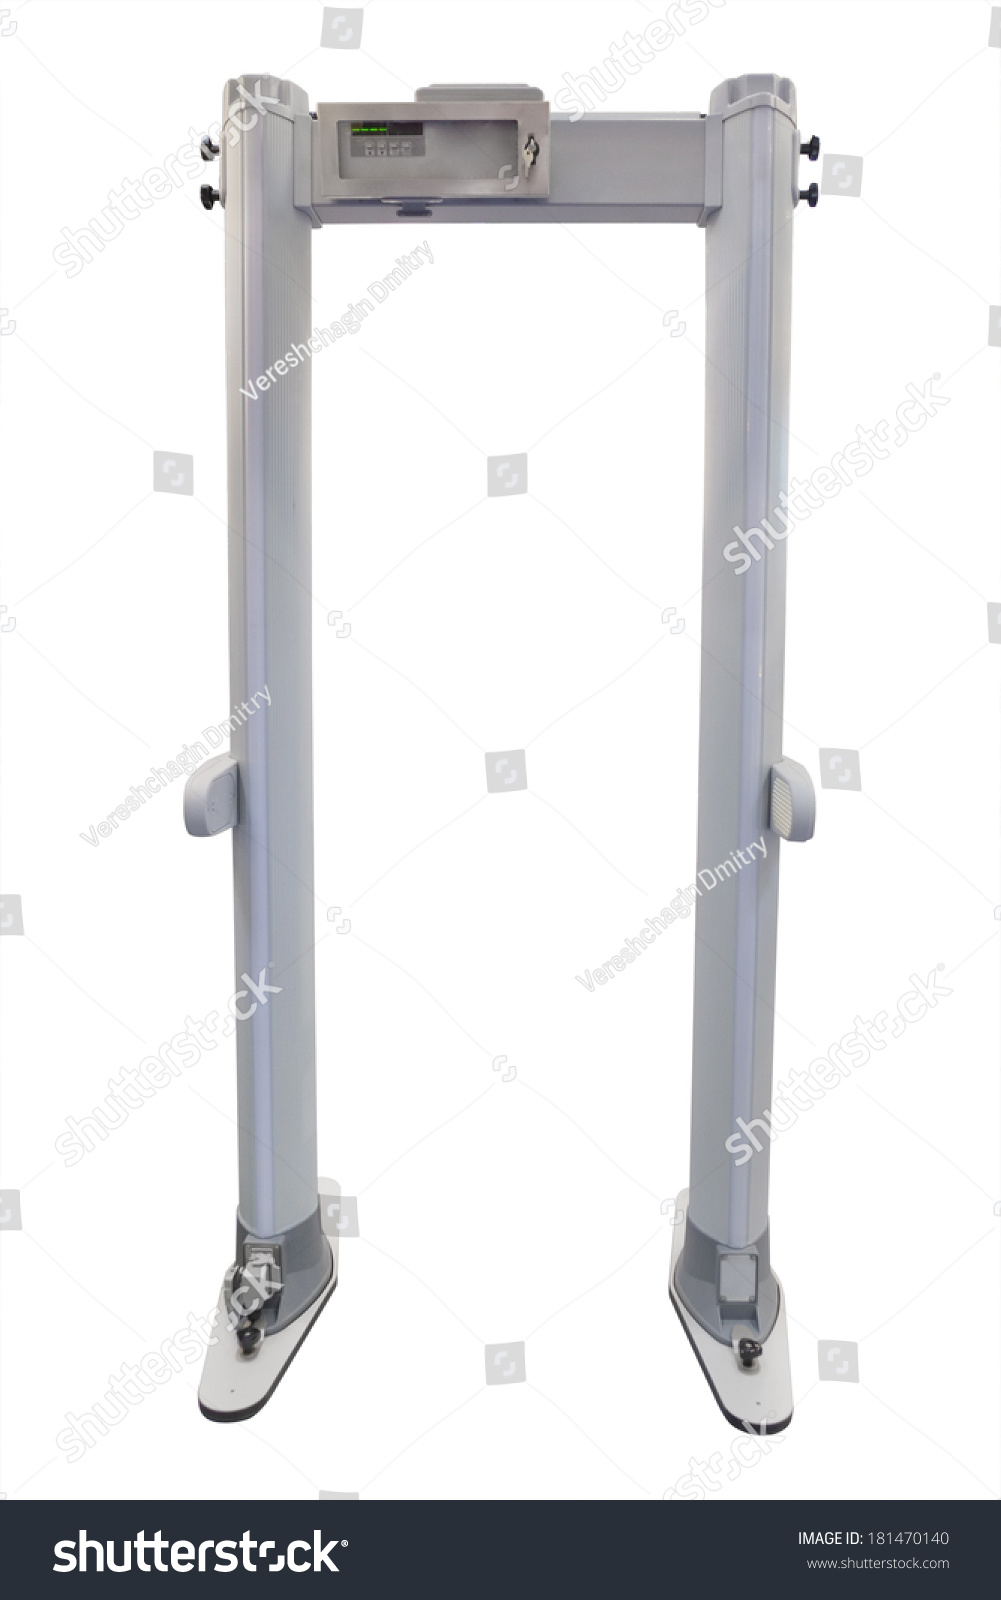 Jew Detector: Metal Detector Under White Background Stock Photo